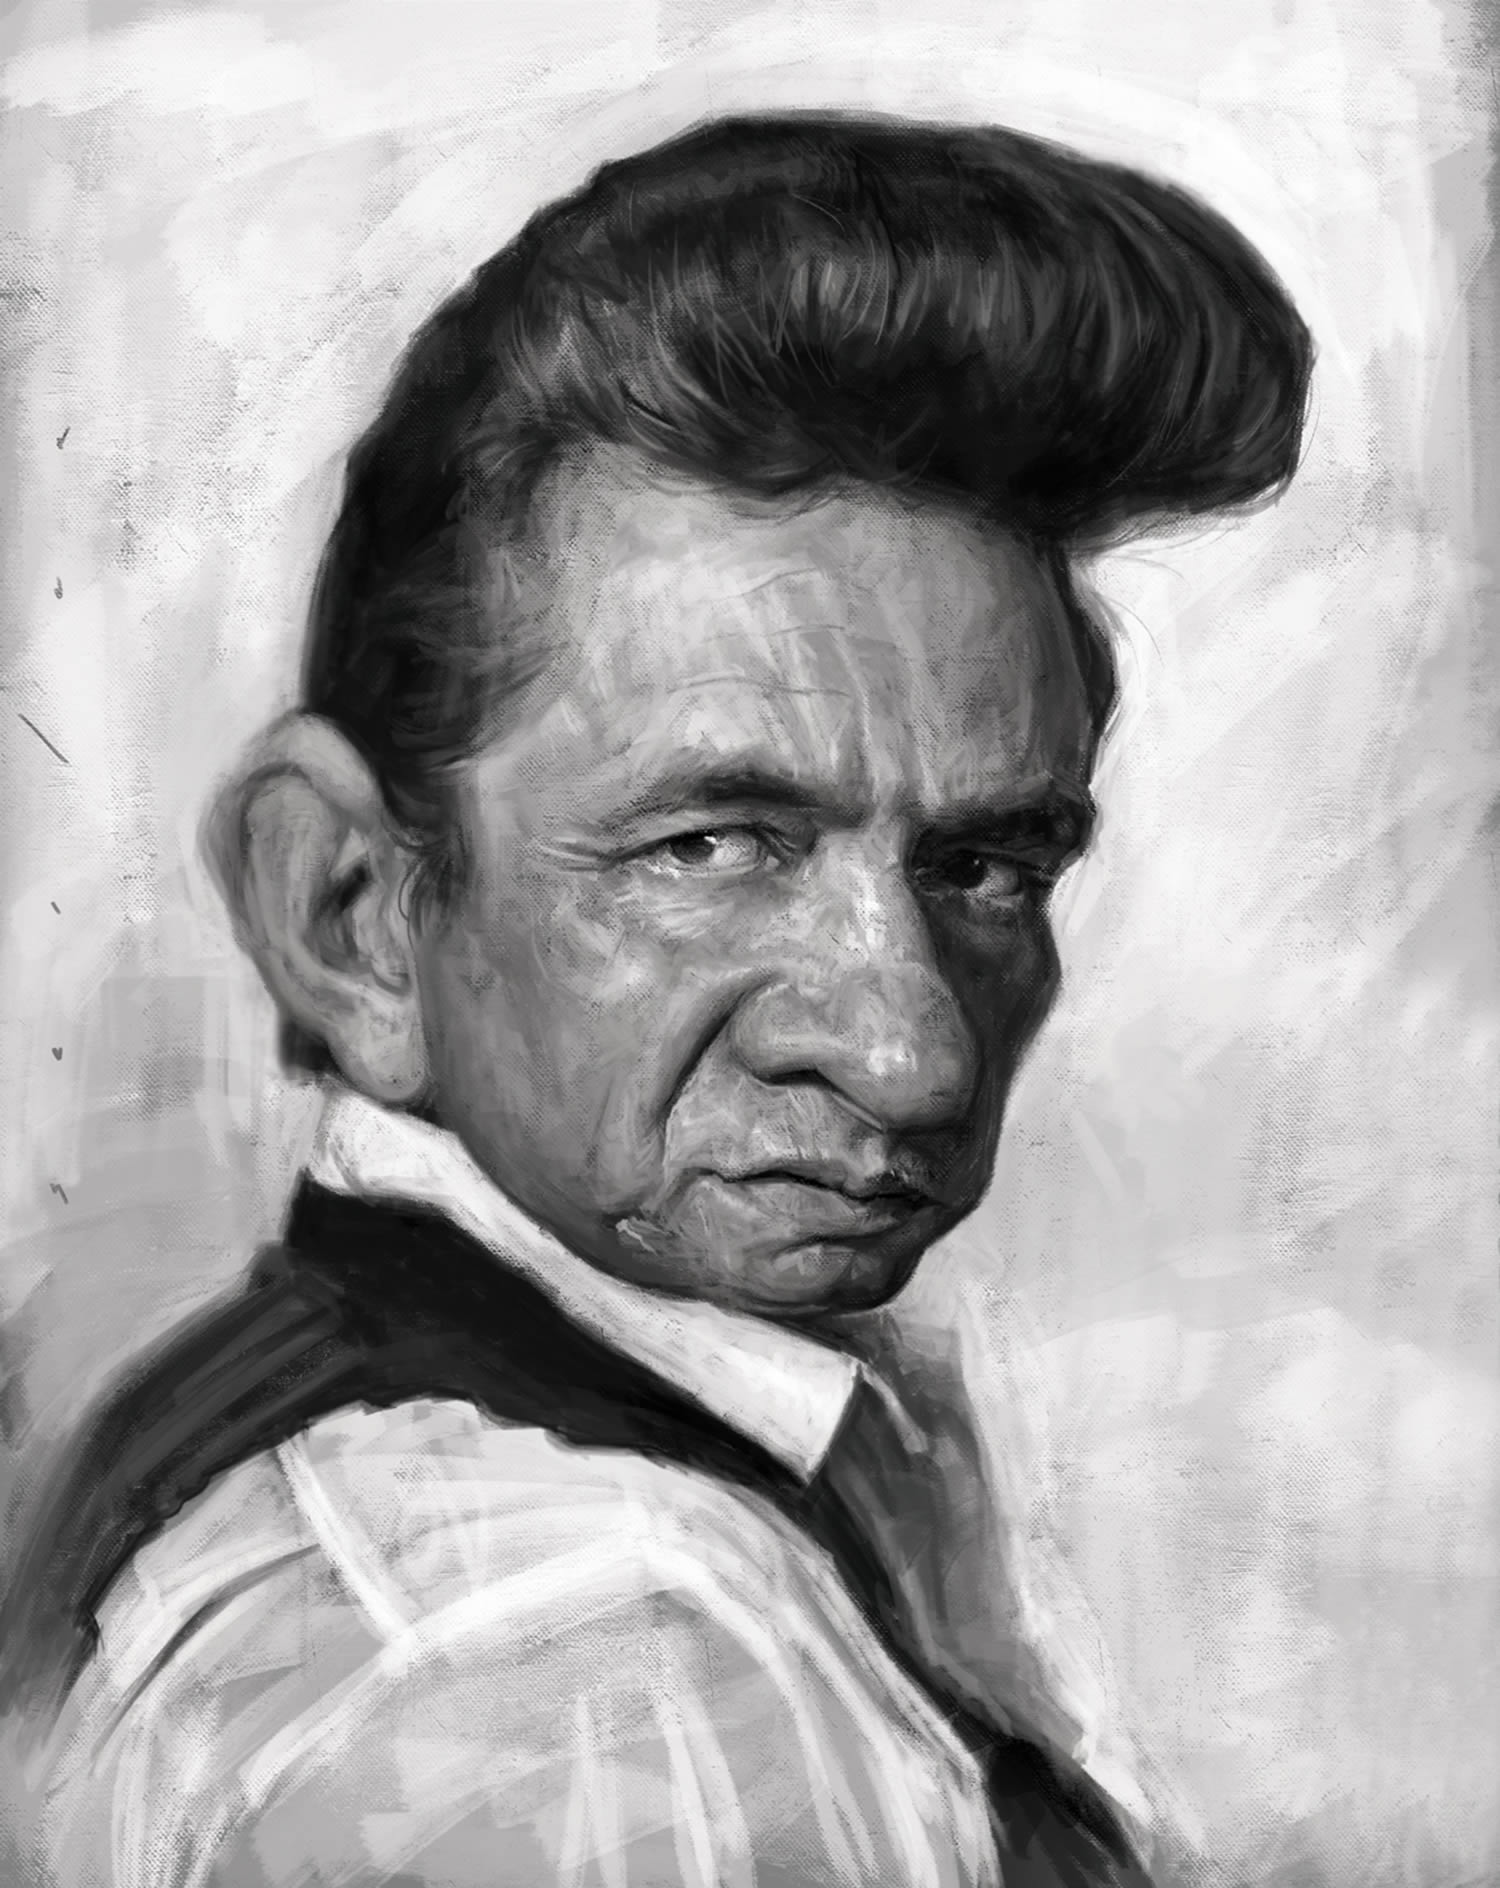 johnny cash, caricature by jason seiler